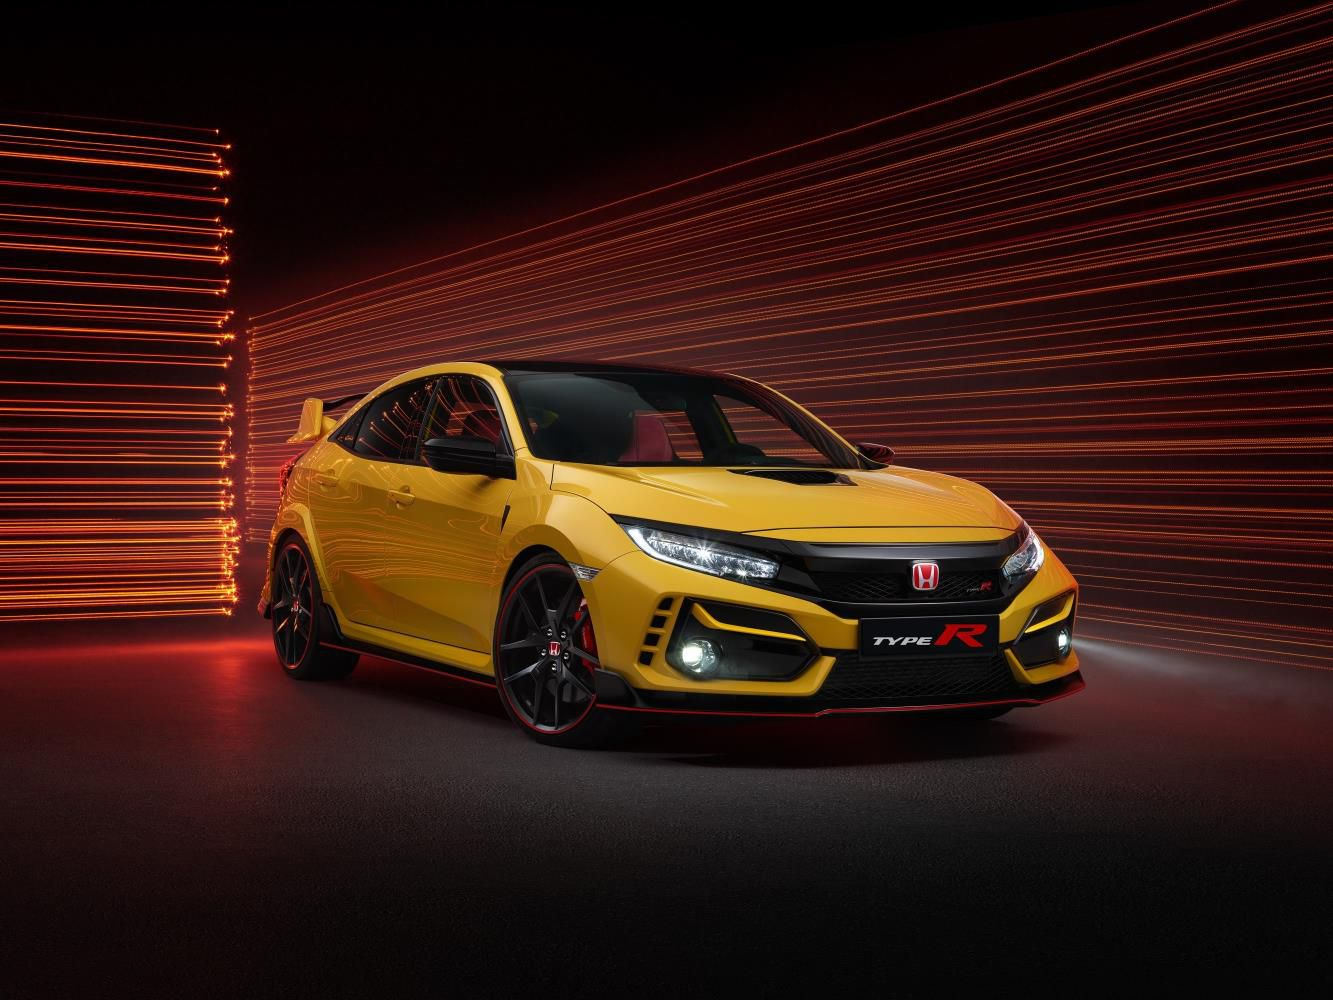 Honda Civic type R Limited Edition in yellow